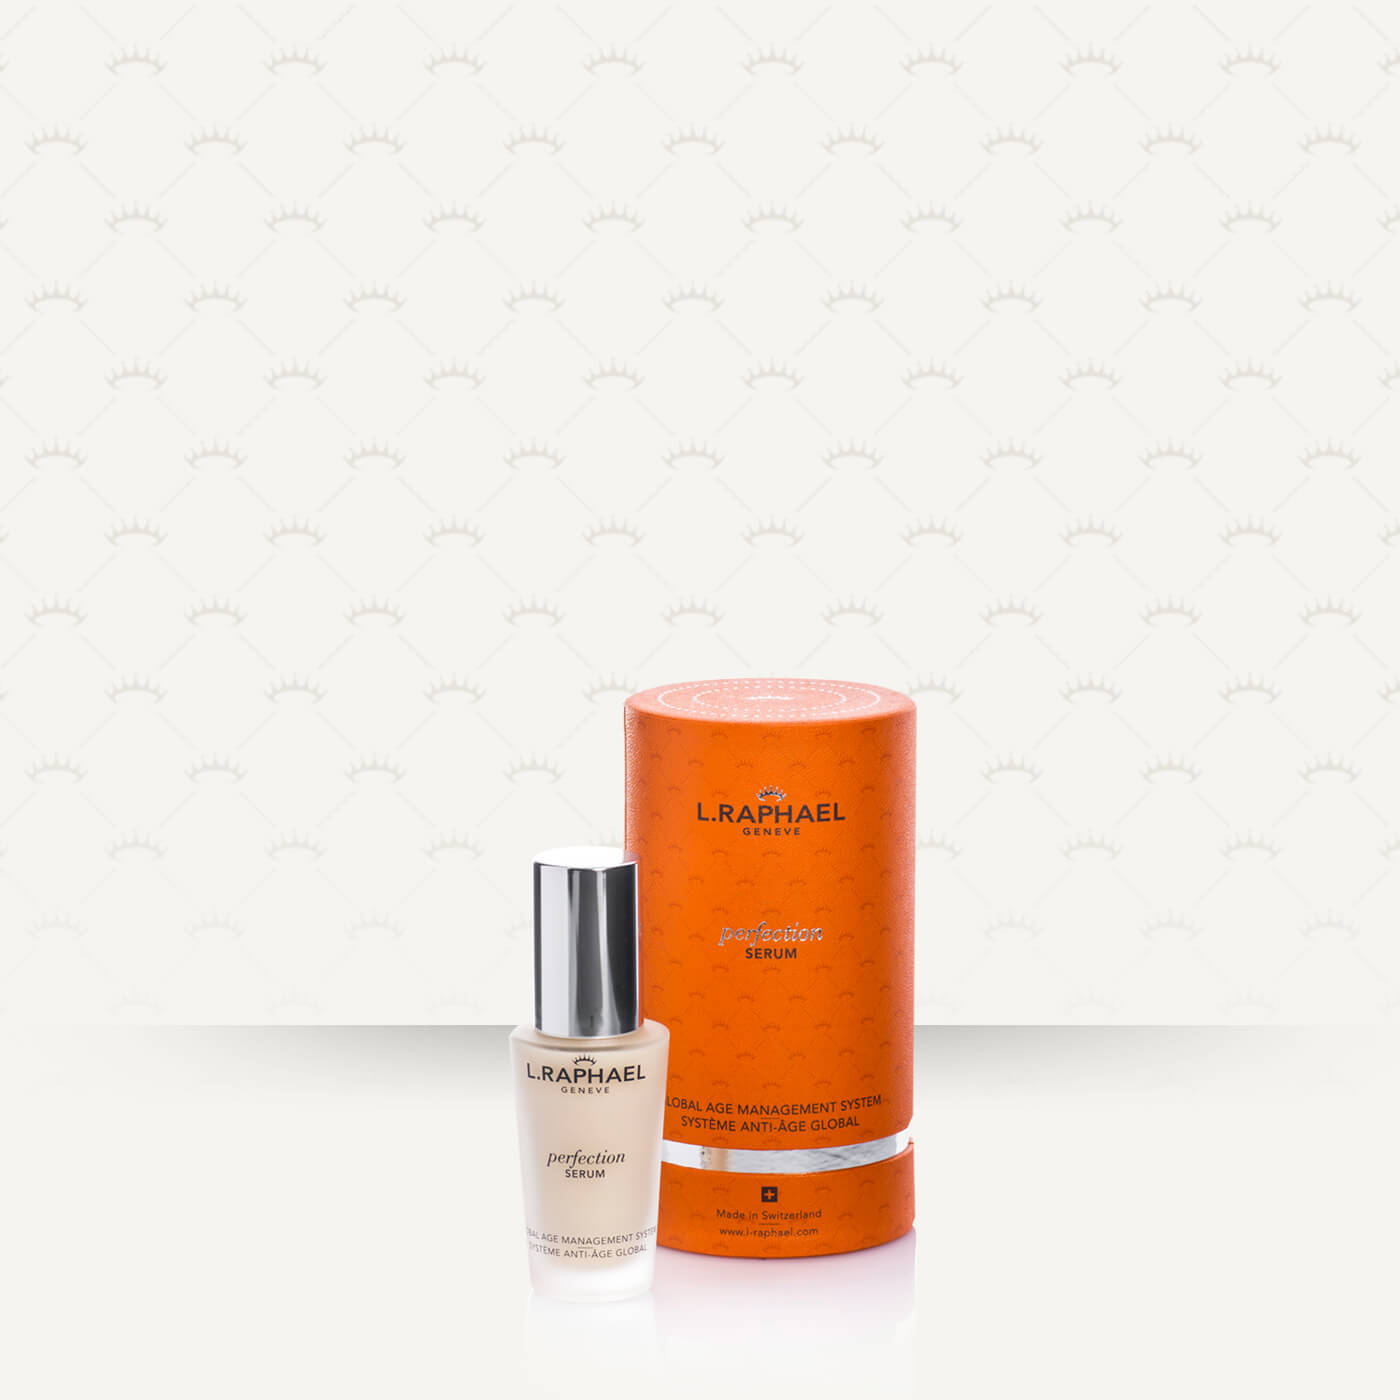 Serum - Perfection GLOBAL AGE MANAGEMENT SYSTEM